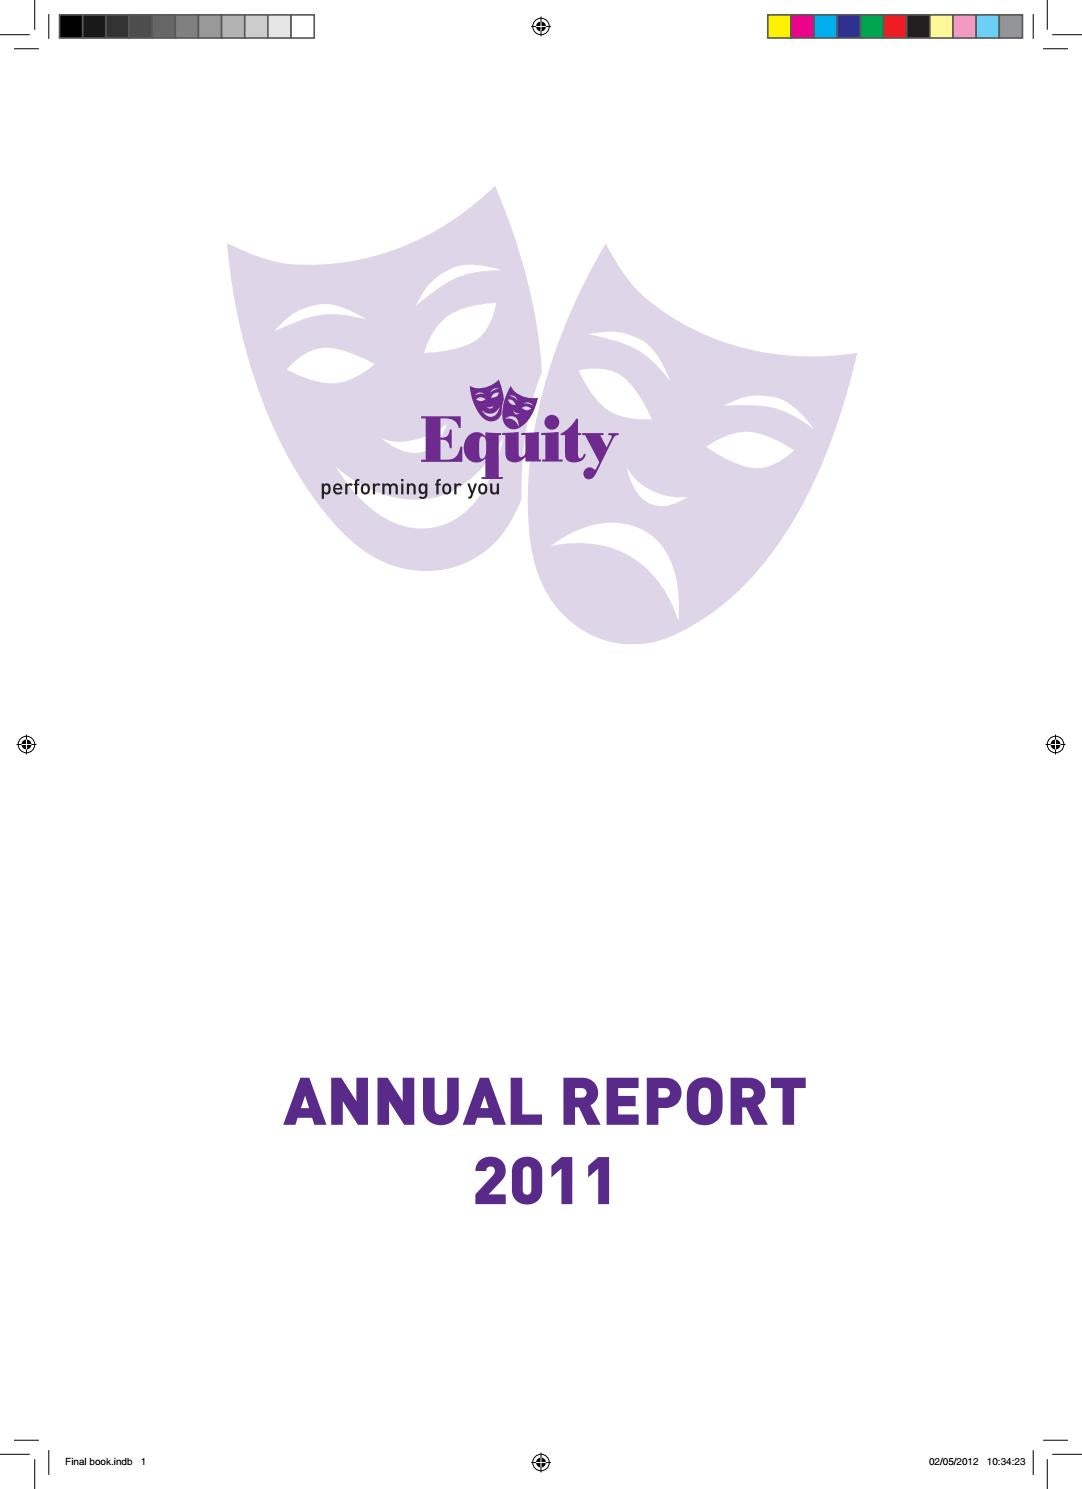 2011 - EquityUK Annual Report by Caron Lyon - issuu